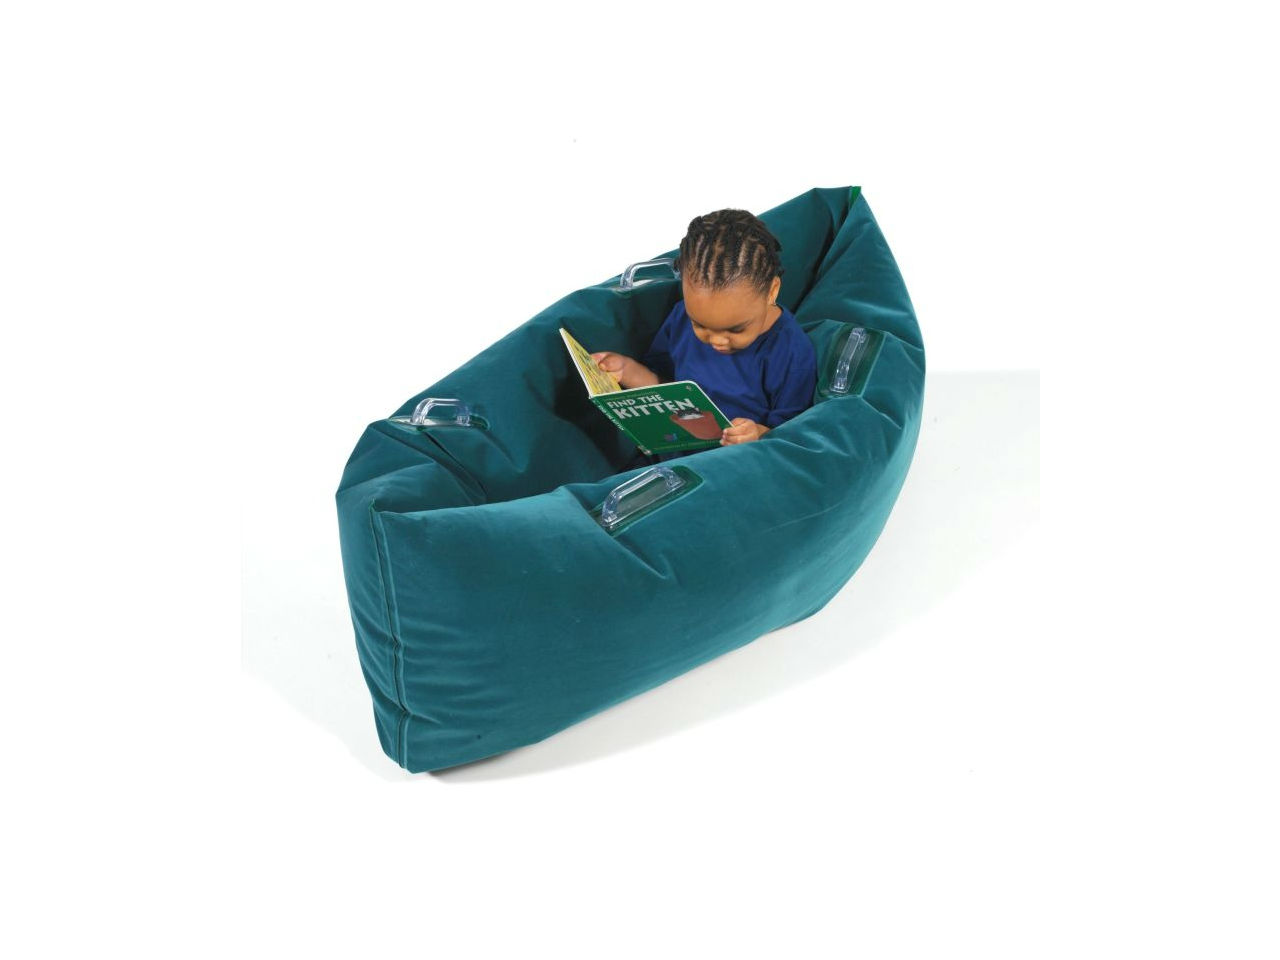 child sits in turquoise pea pod